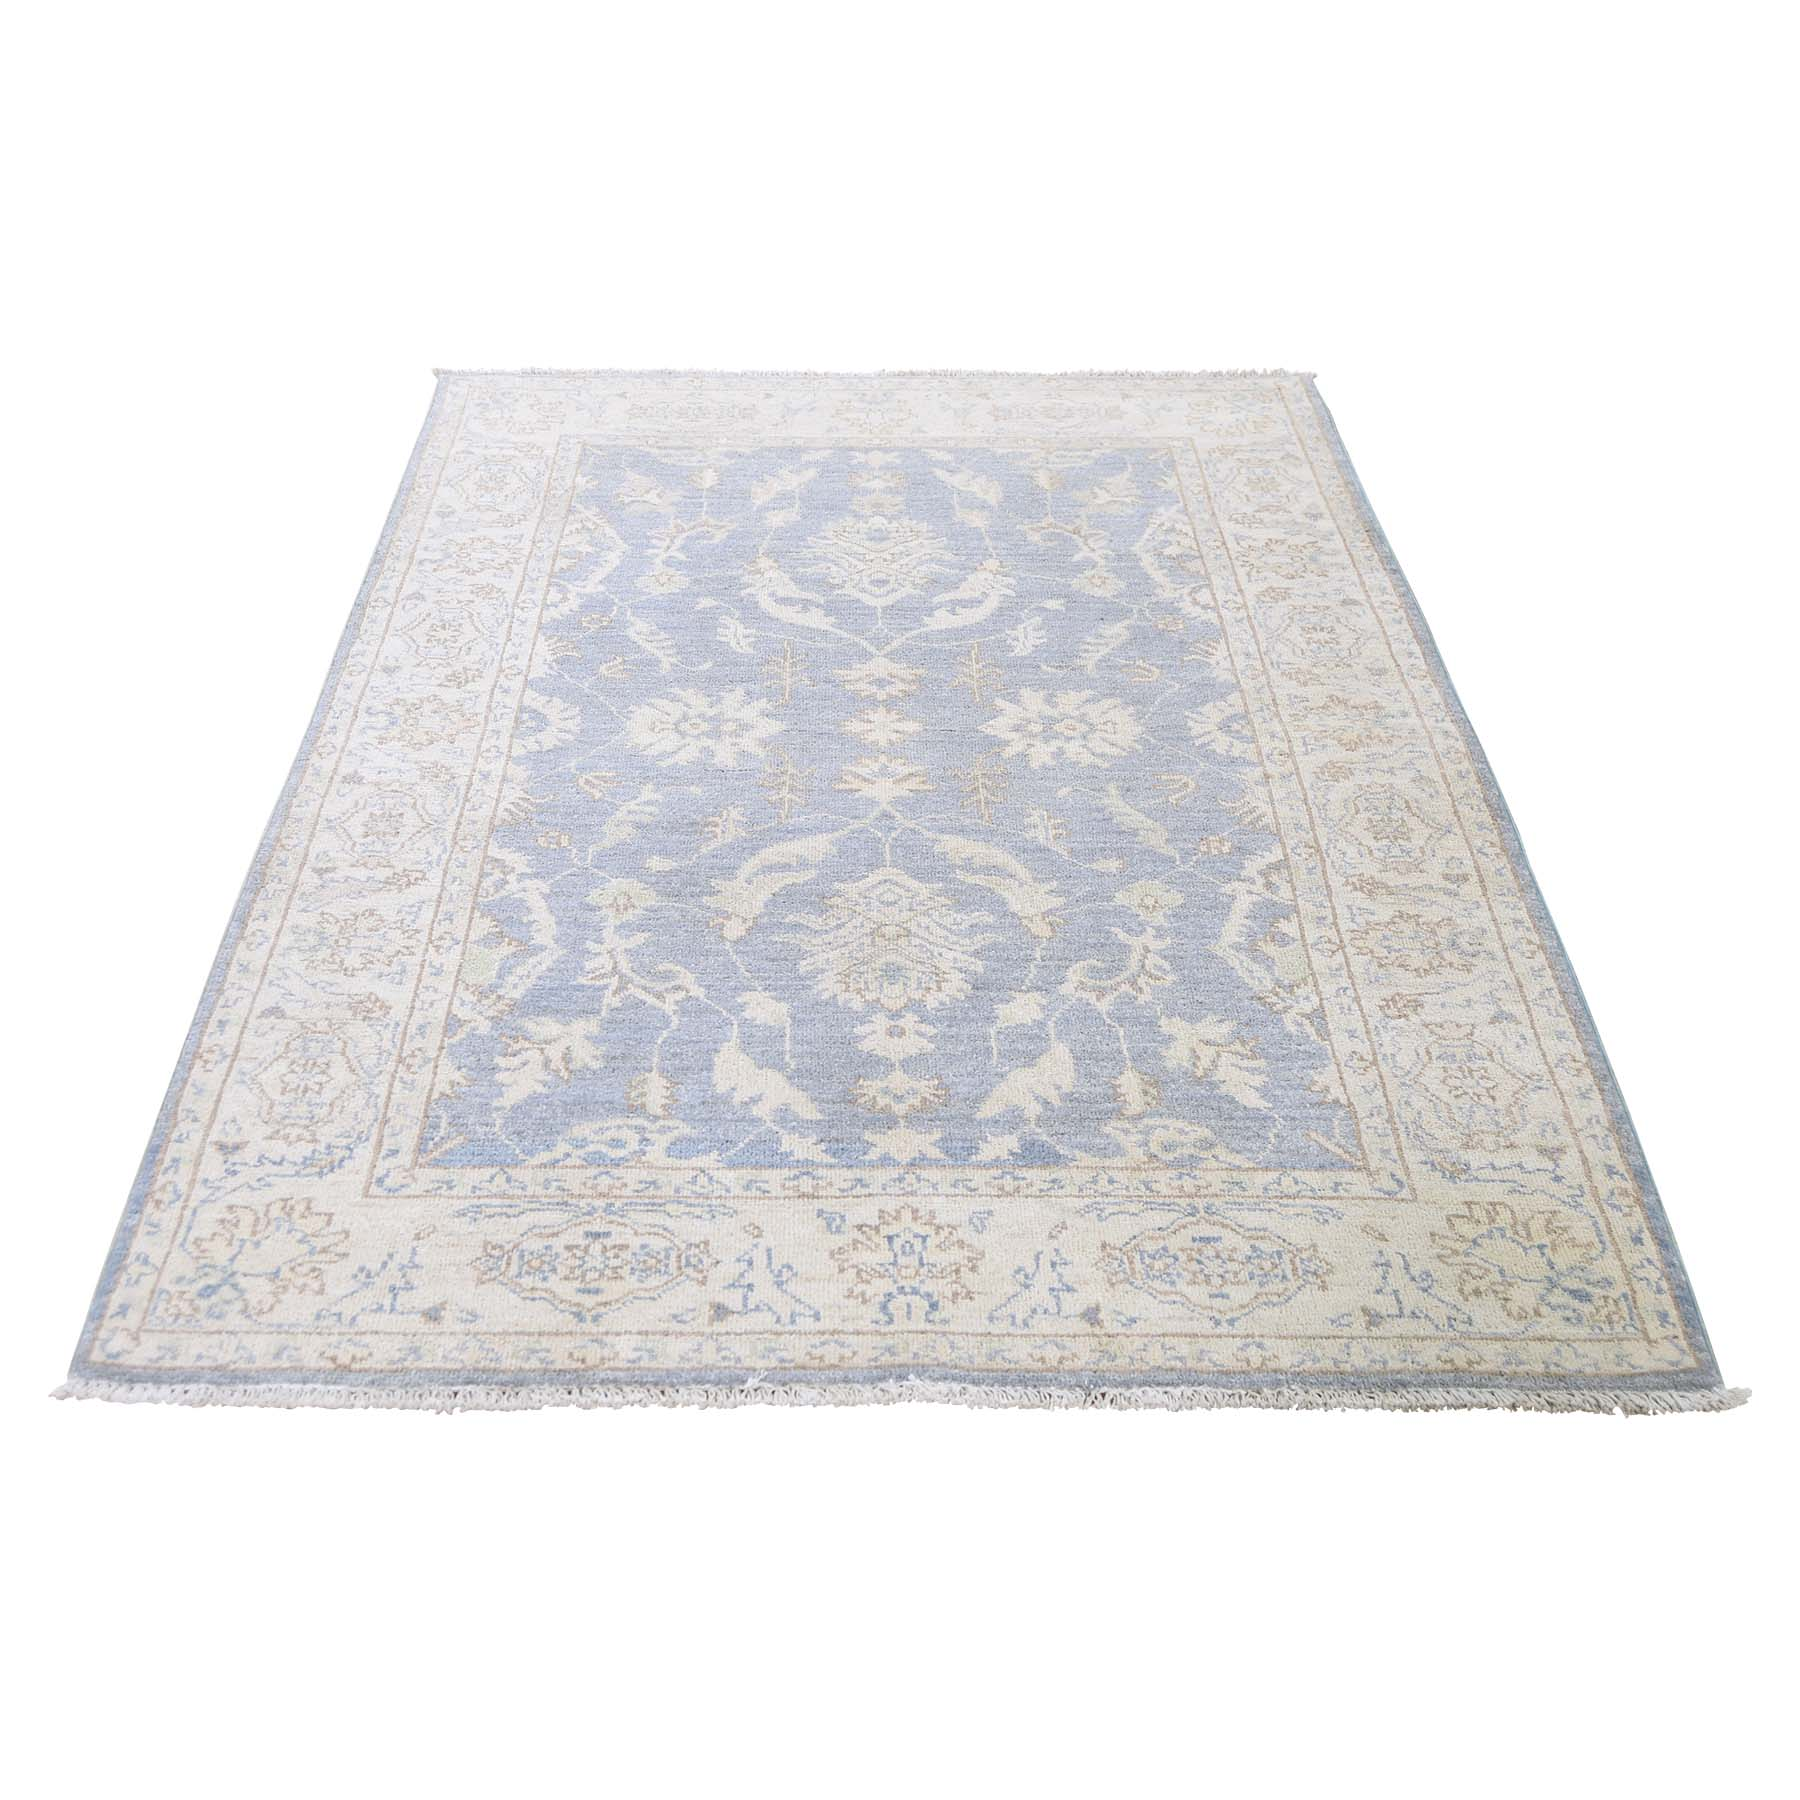 4'X6' Peshawar White Wash Hand-Knotted Pure Wool Oriental Rug moadc7ea